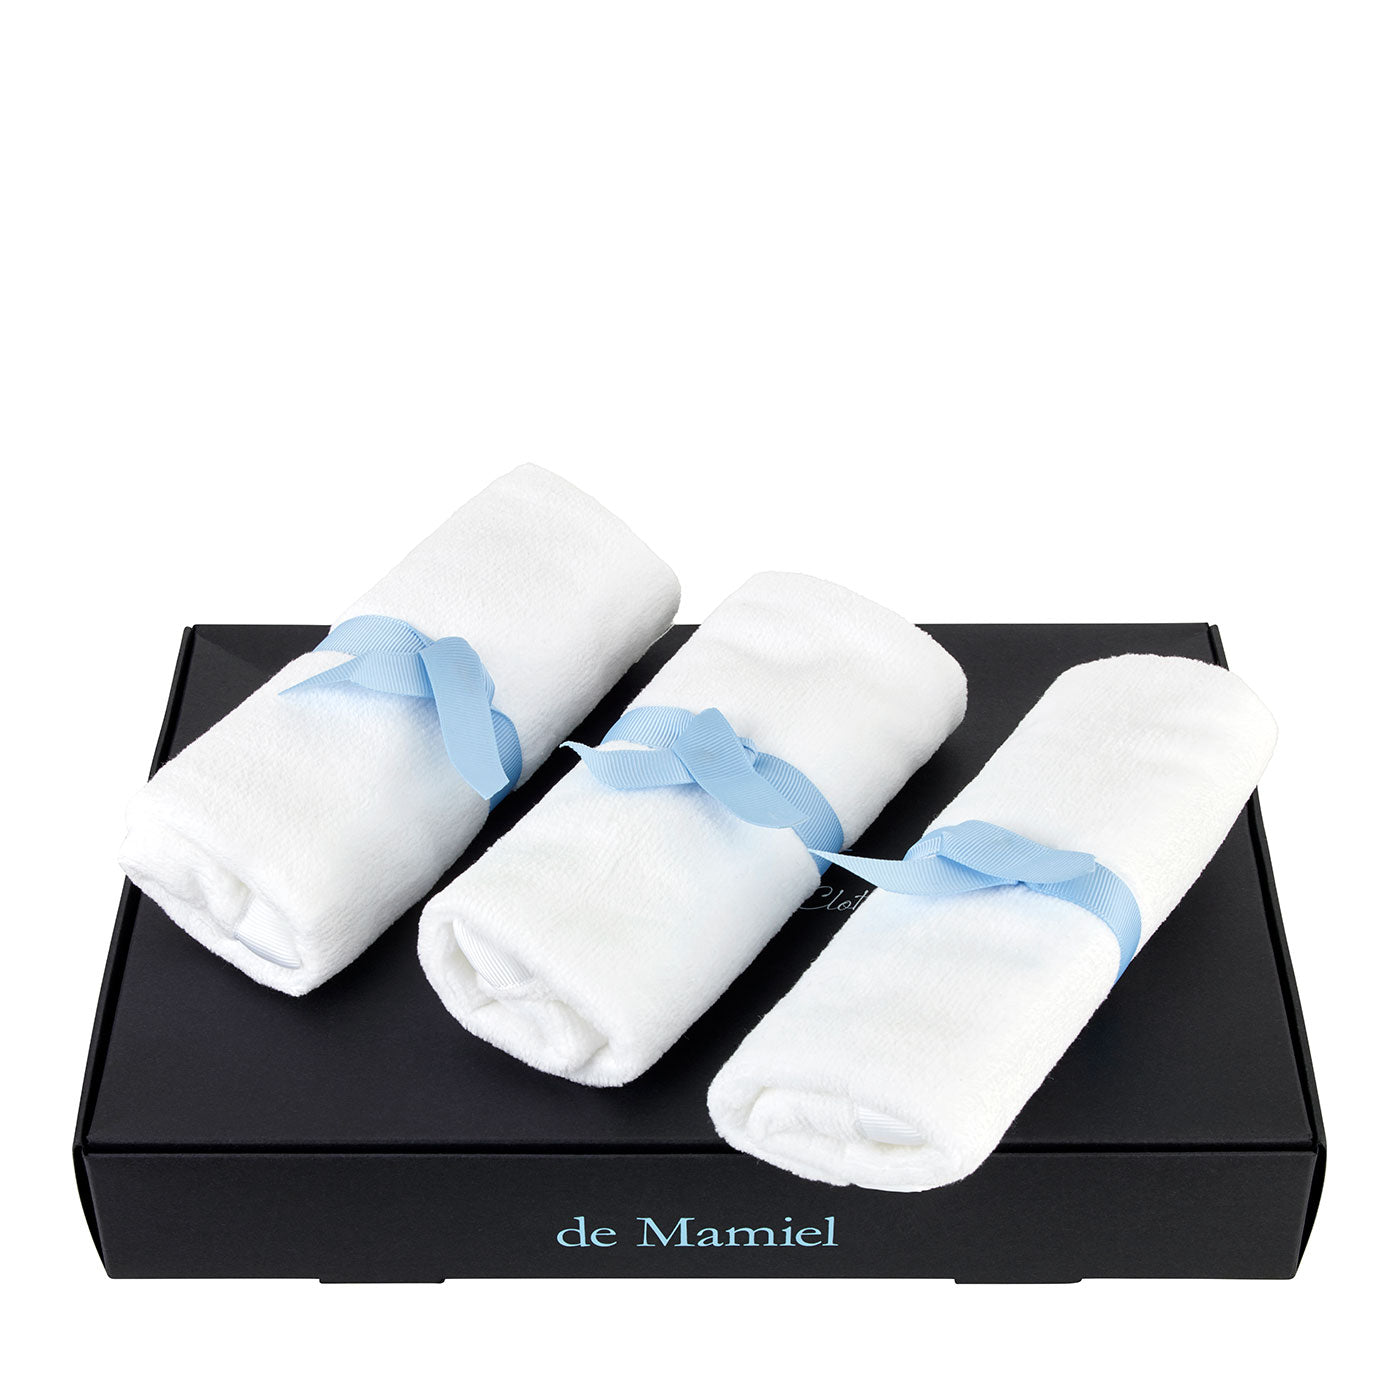 de Mamiel Luxury Cleansing Cloths